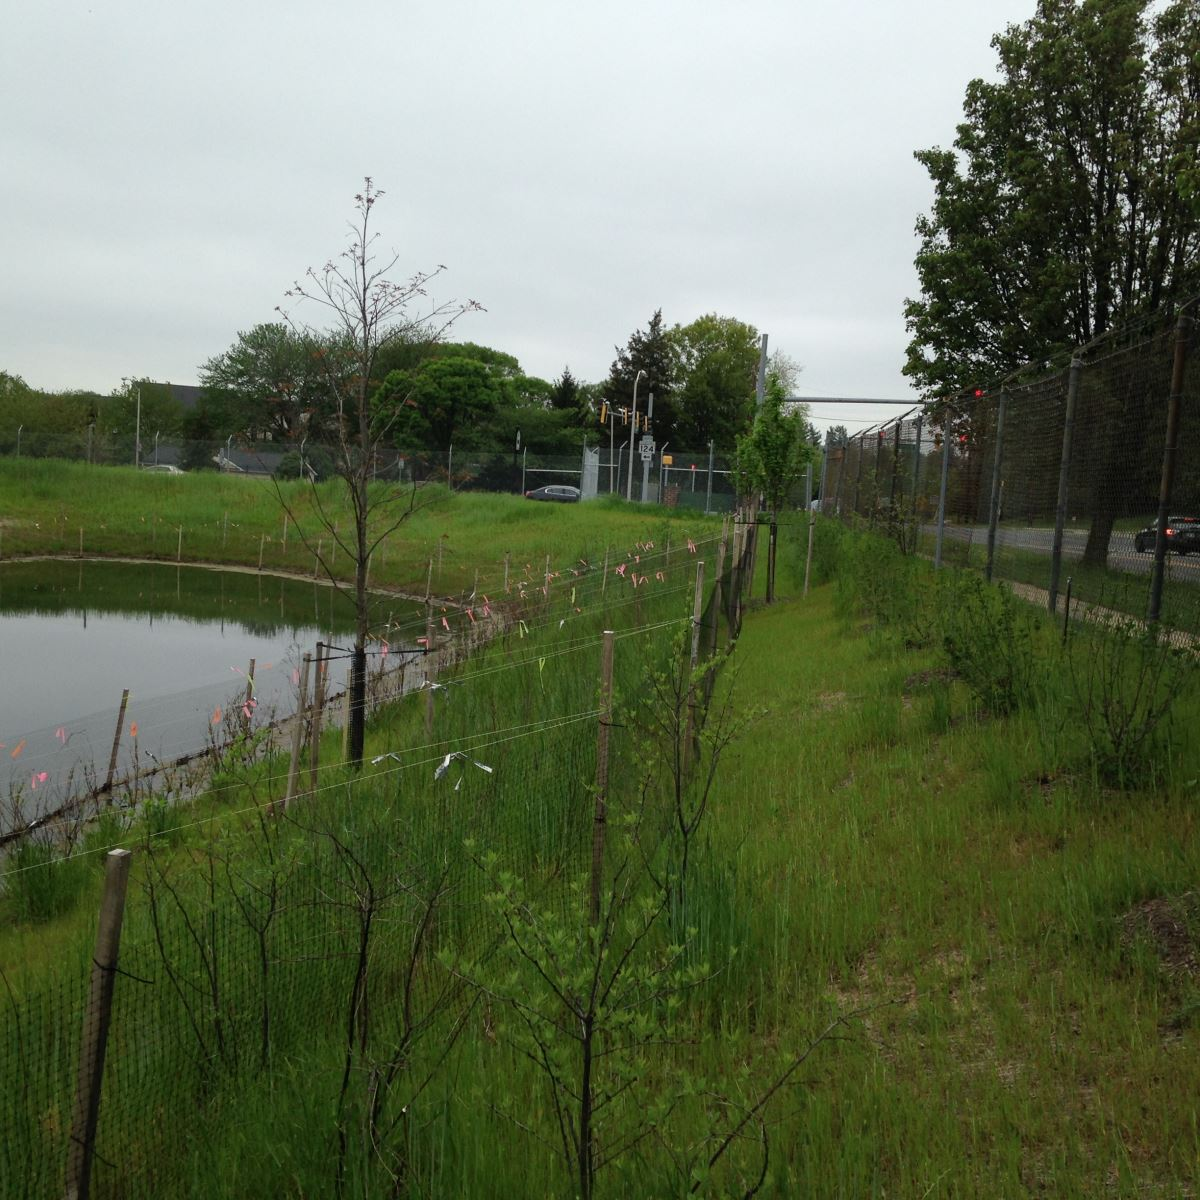 Whetstone run phase 1 stormwater ponds department of for Stormwater pond design